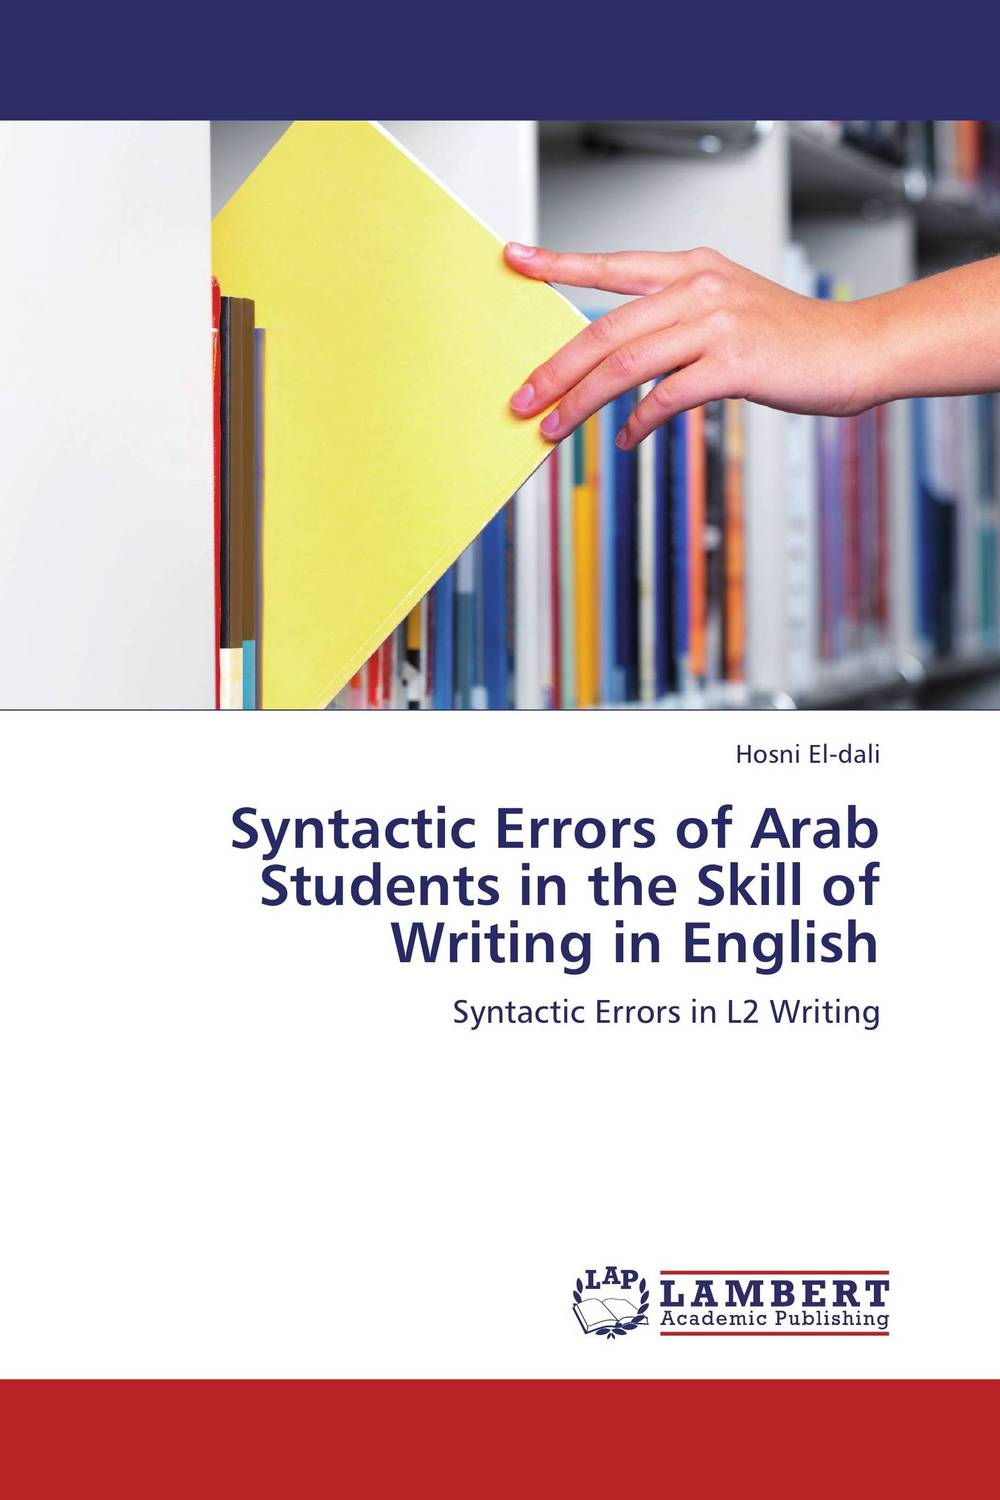 Syntactic Errors of Arab Students in the Skill of Writing in English promoting social change in the arab gulf